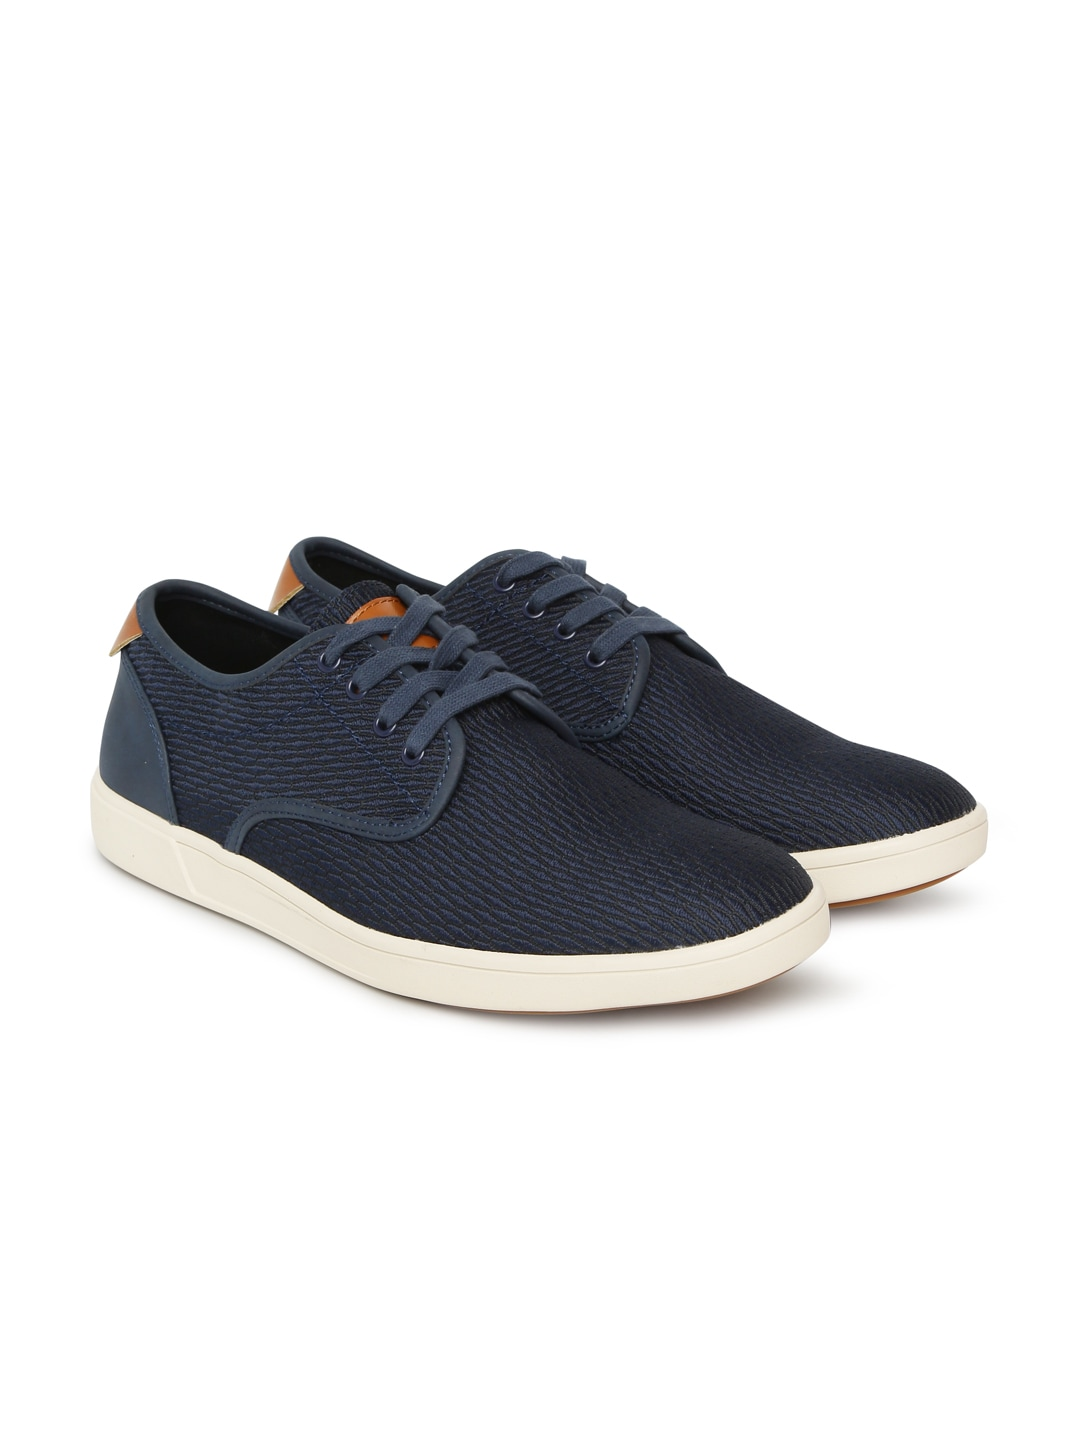 89ec6d9b9d2 Steve Madden Men Navy Blue Sneakers